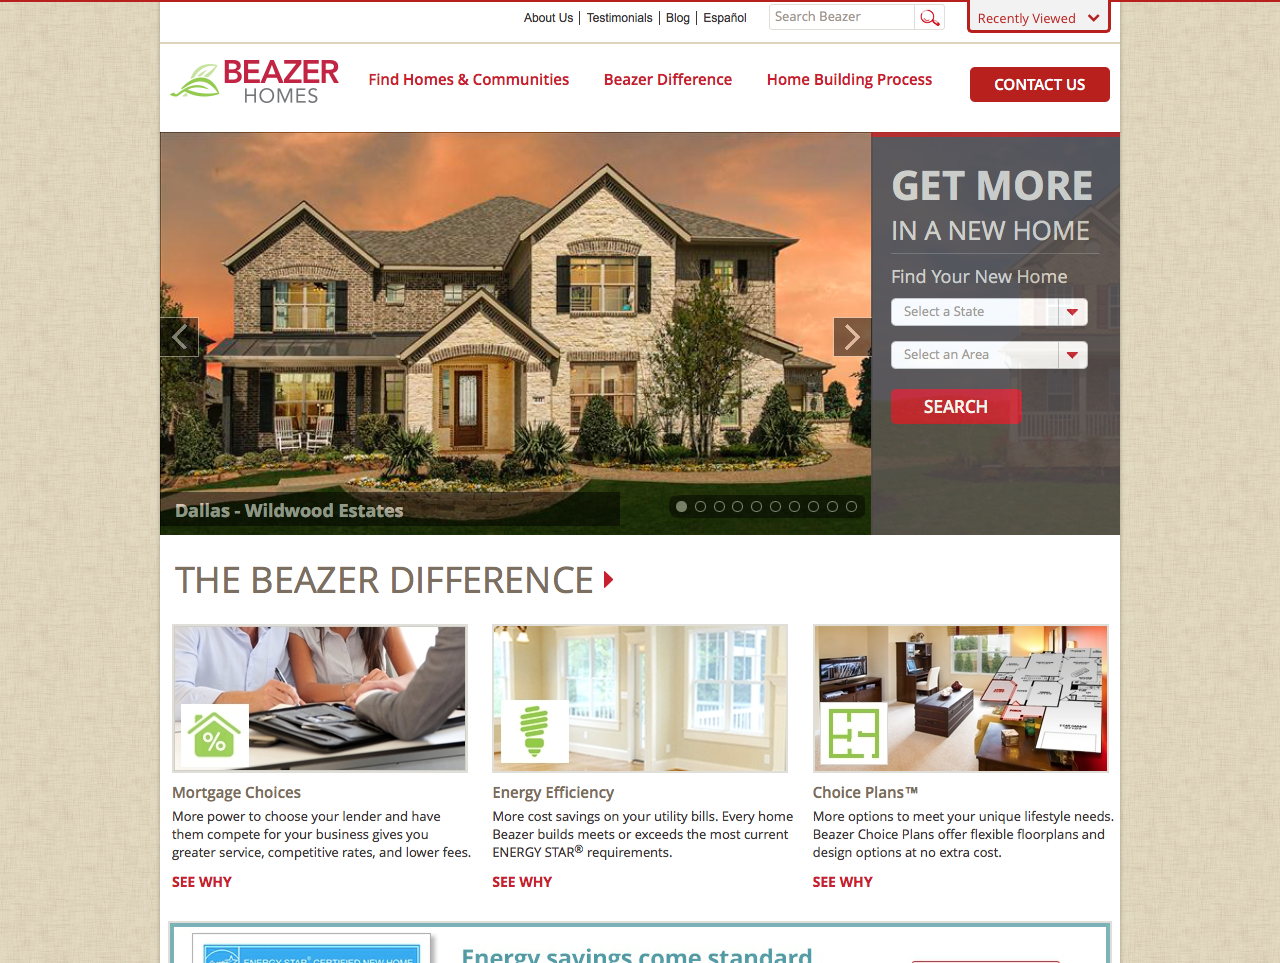 Beazer Homes Company Profile   Office Locations, Competitors, Revenue,  Financials, Employees, Key People, Subsidiaries, News | Craft.co